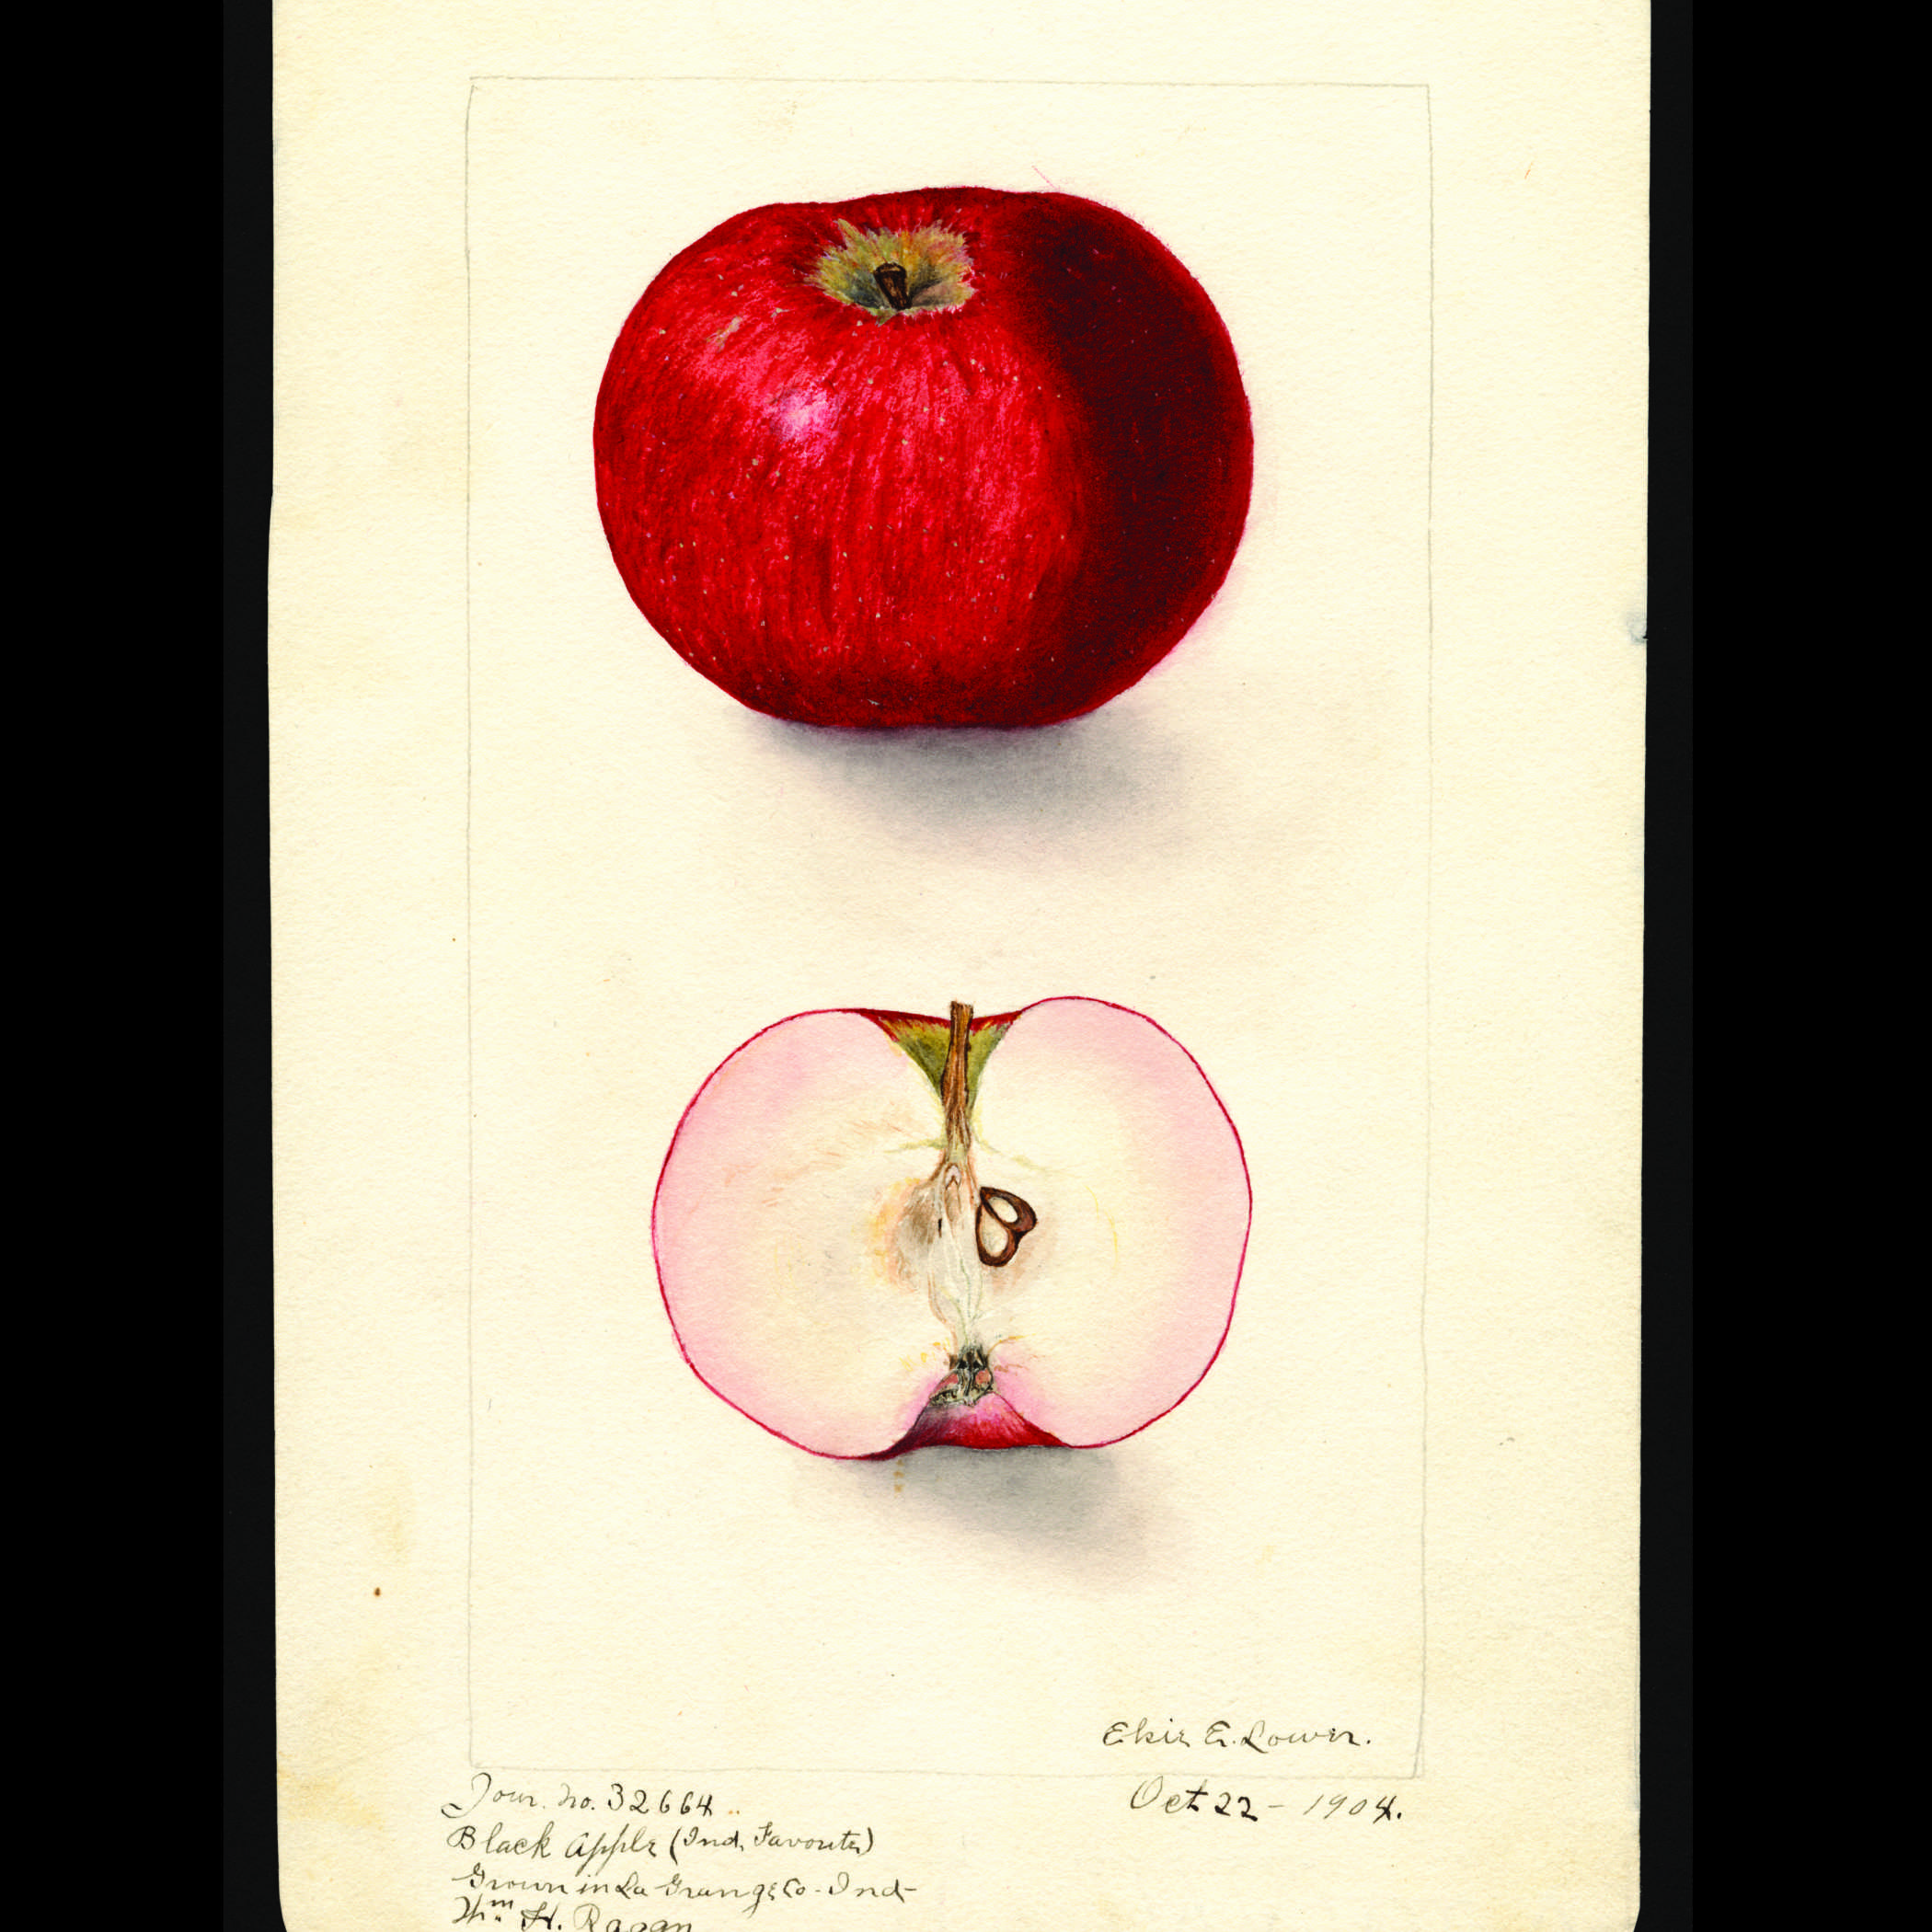 watercolor of a red apple in two views - top painting shows the outside of the apple, bottom painting shows the apple sliced in half exposing the flesh